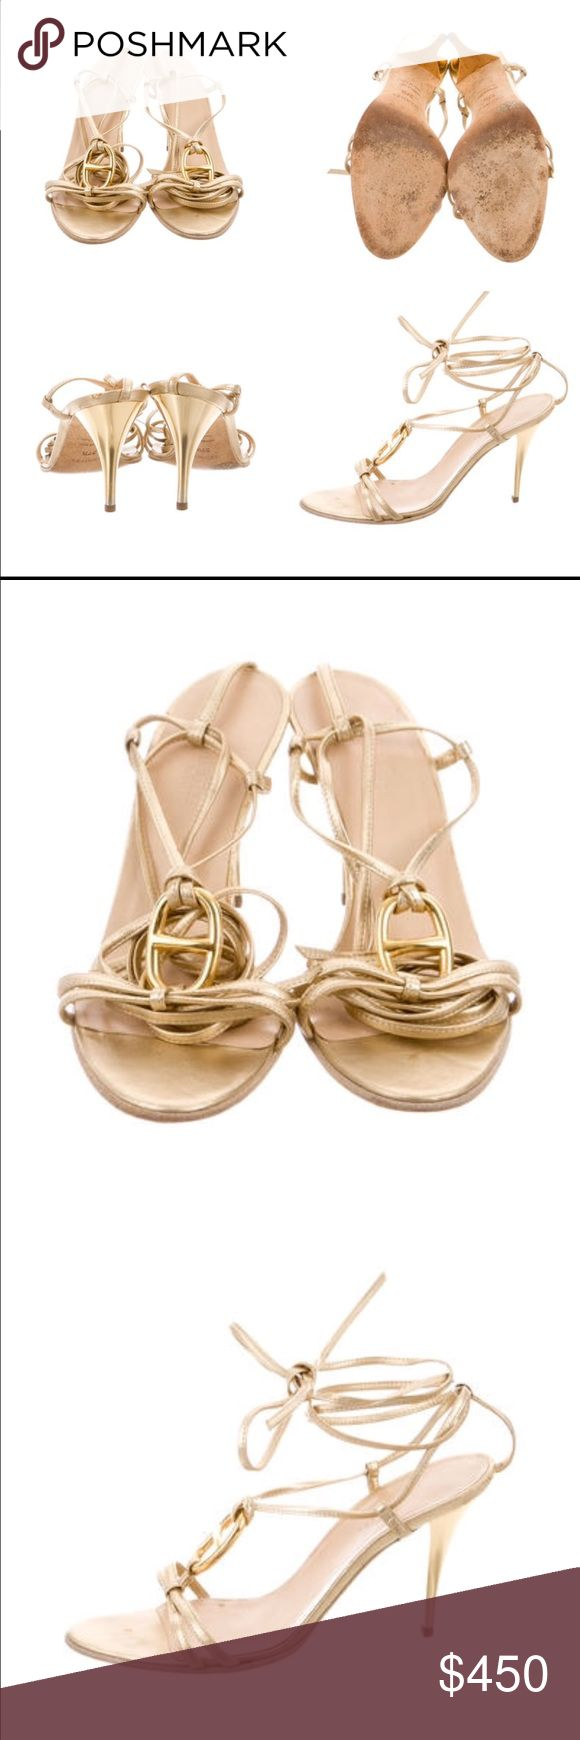 Hermes lace up sandals Metallic gold-tone leather Hermès sandals with covered heels, Chaîne d'Ancre ring adornment at tops and lace-up closures. Hermes Shoes Sandals